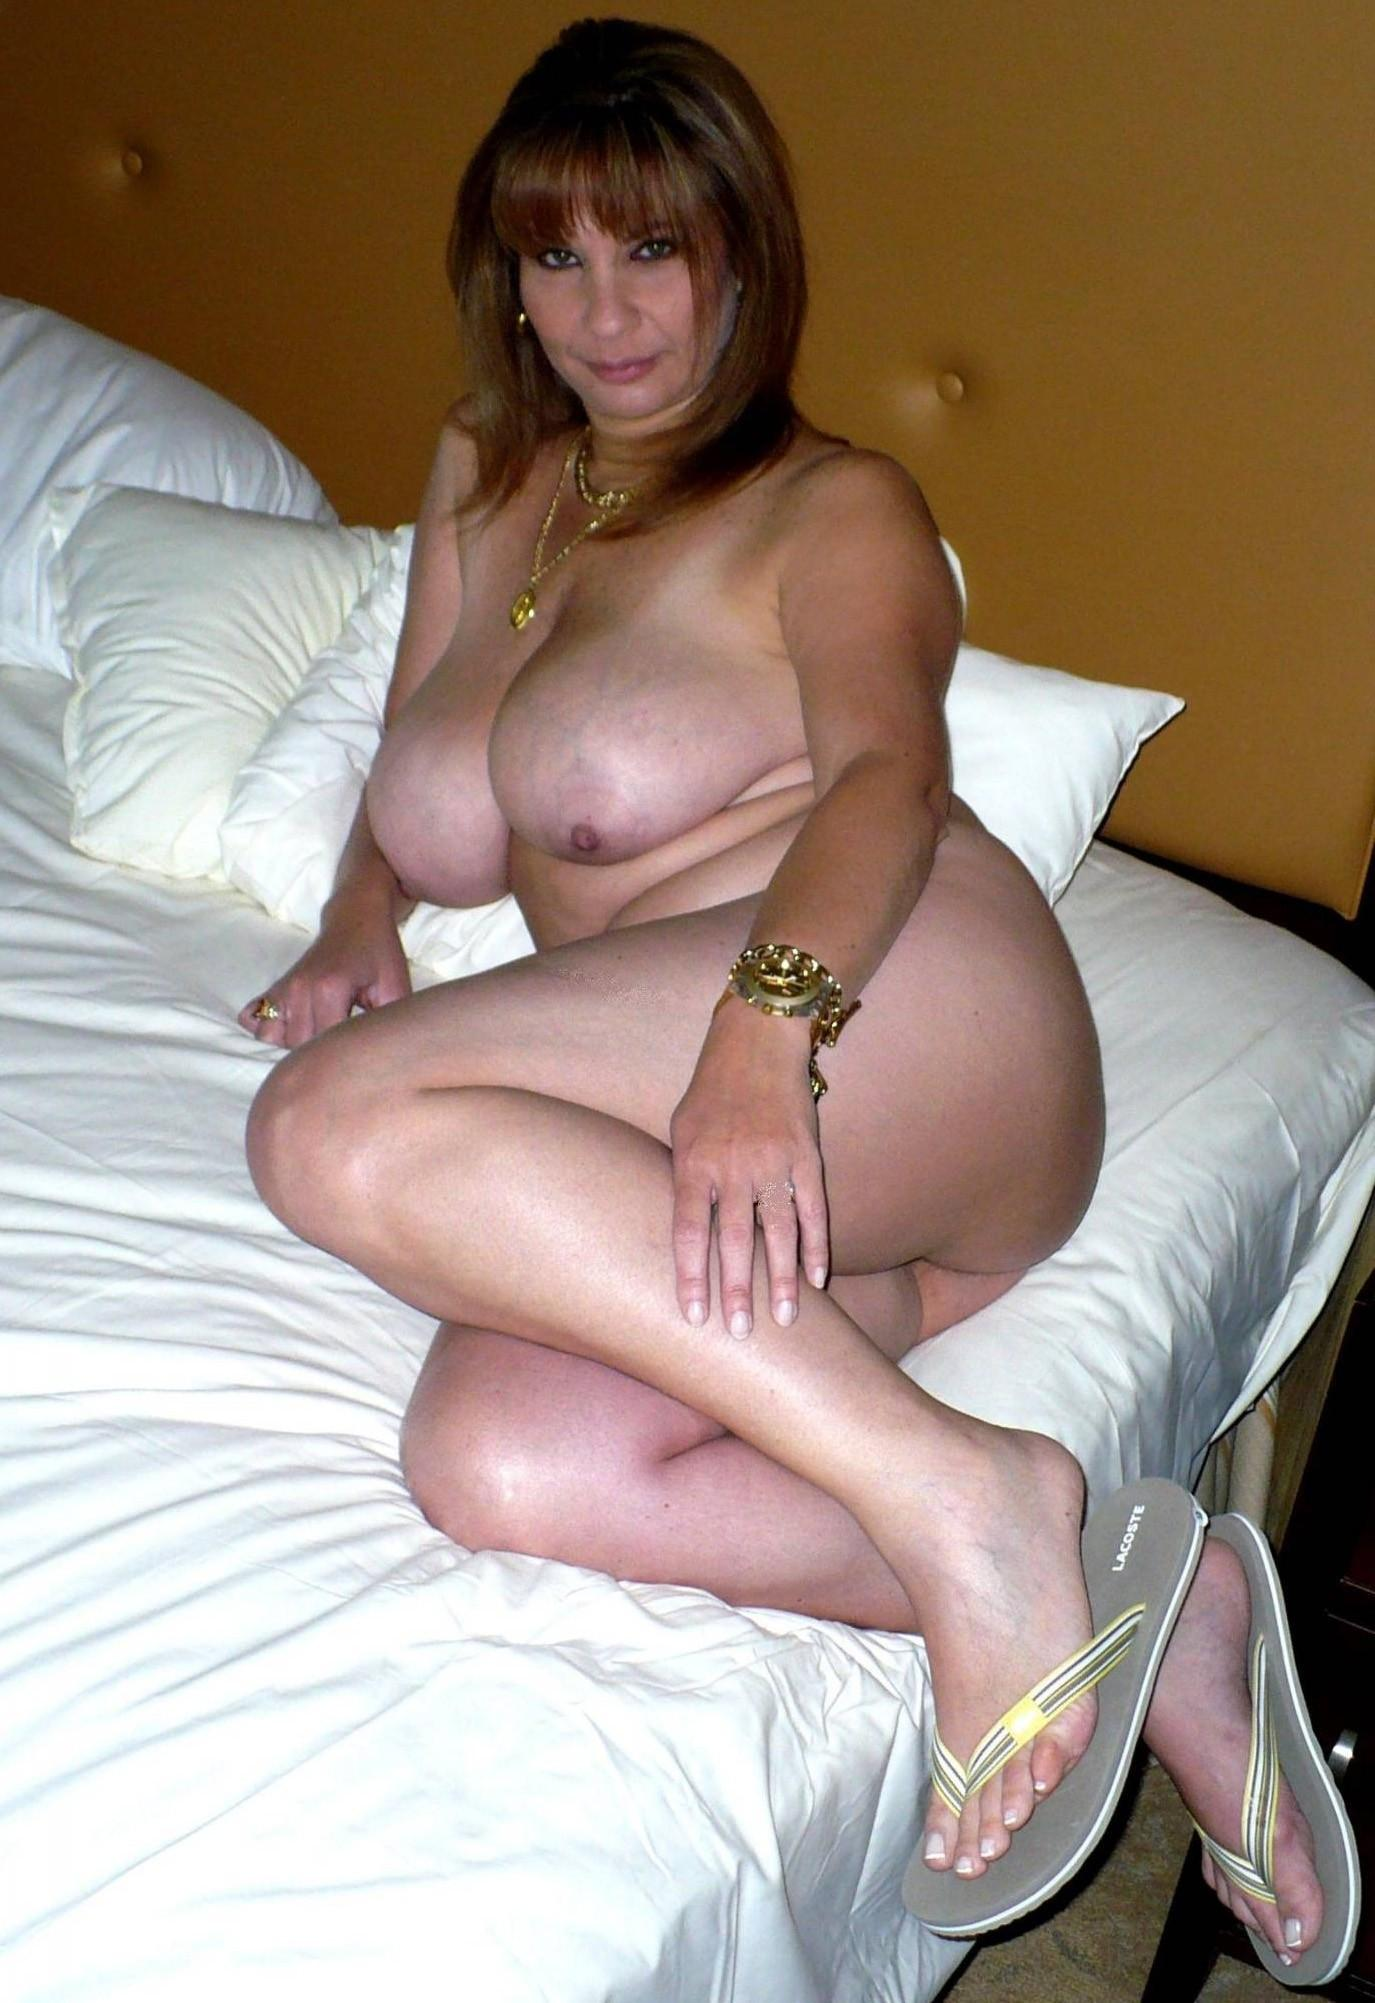 WATCH MORE PHOTOS AND VIDEOS AT AMATEUR MILFs